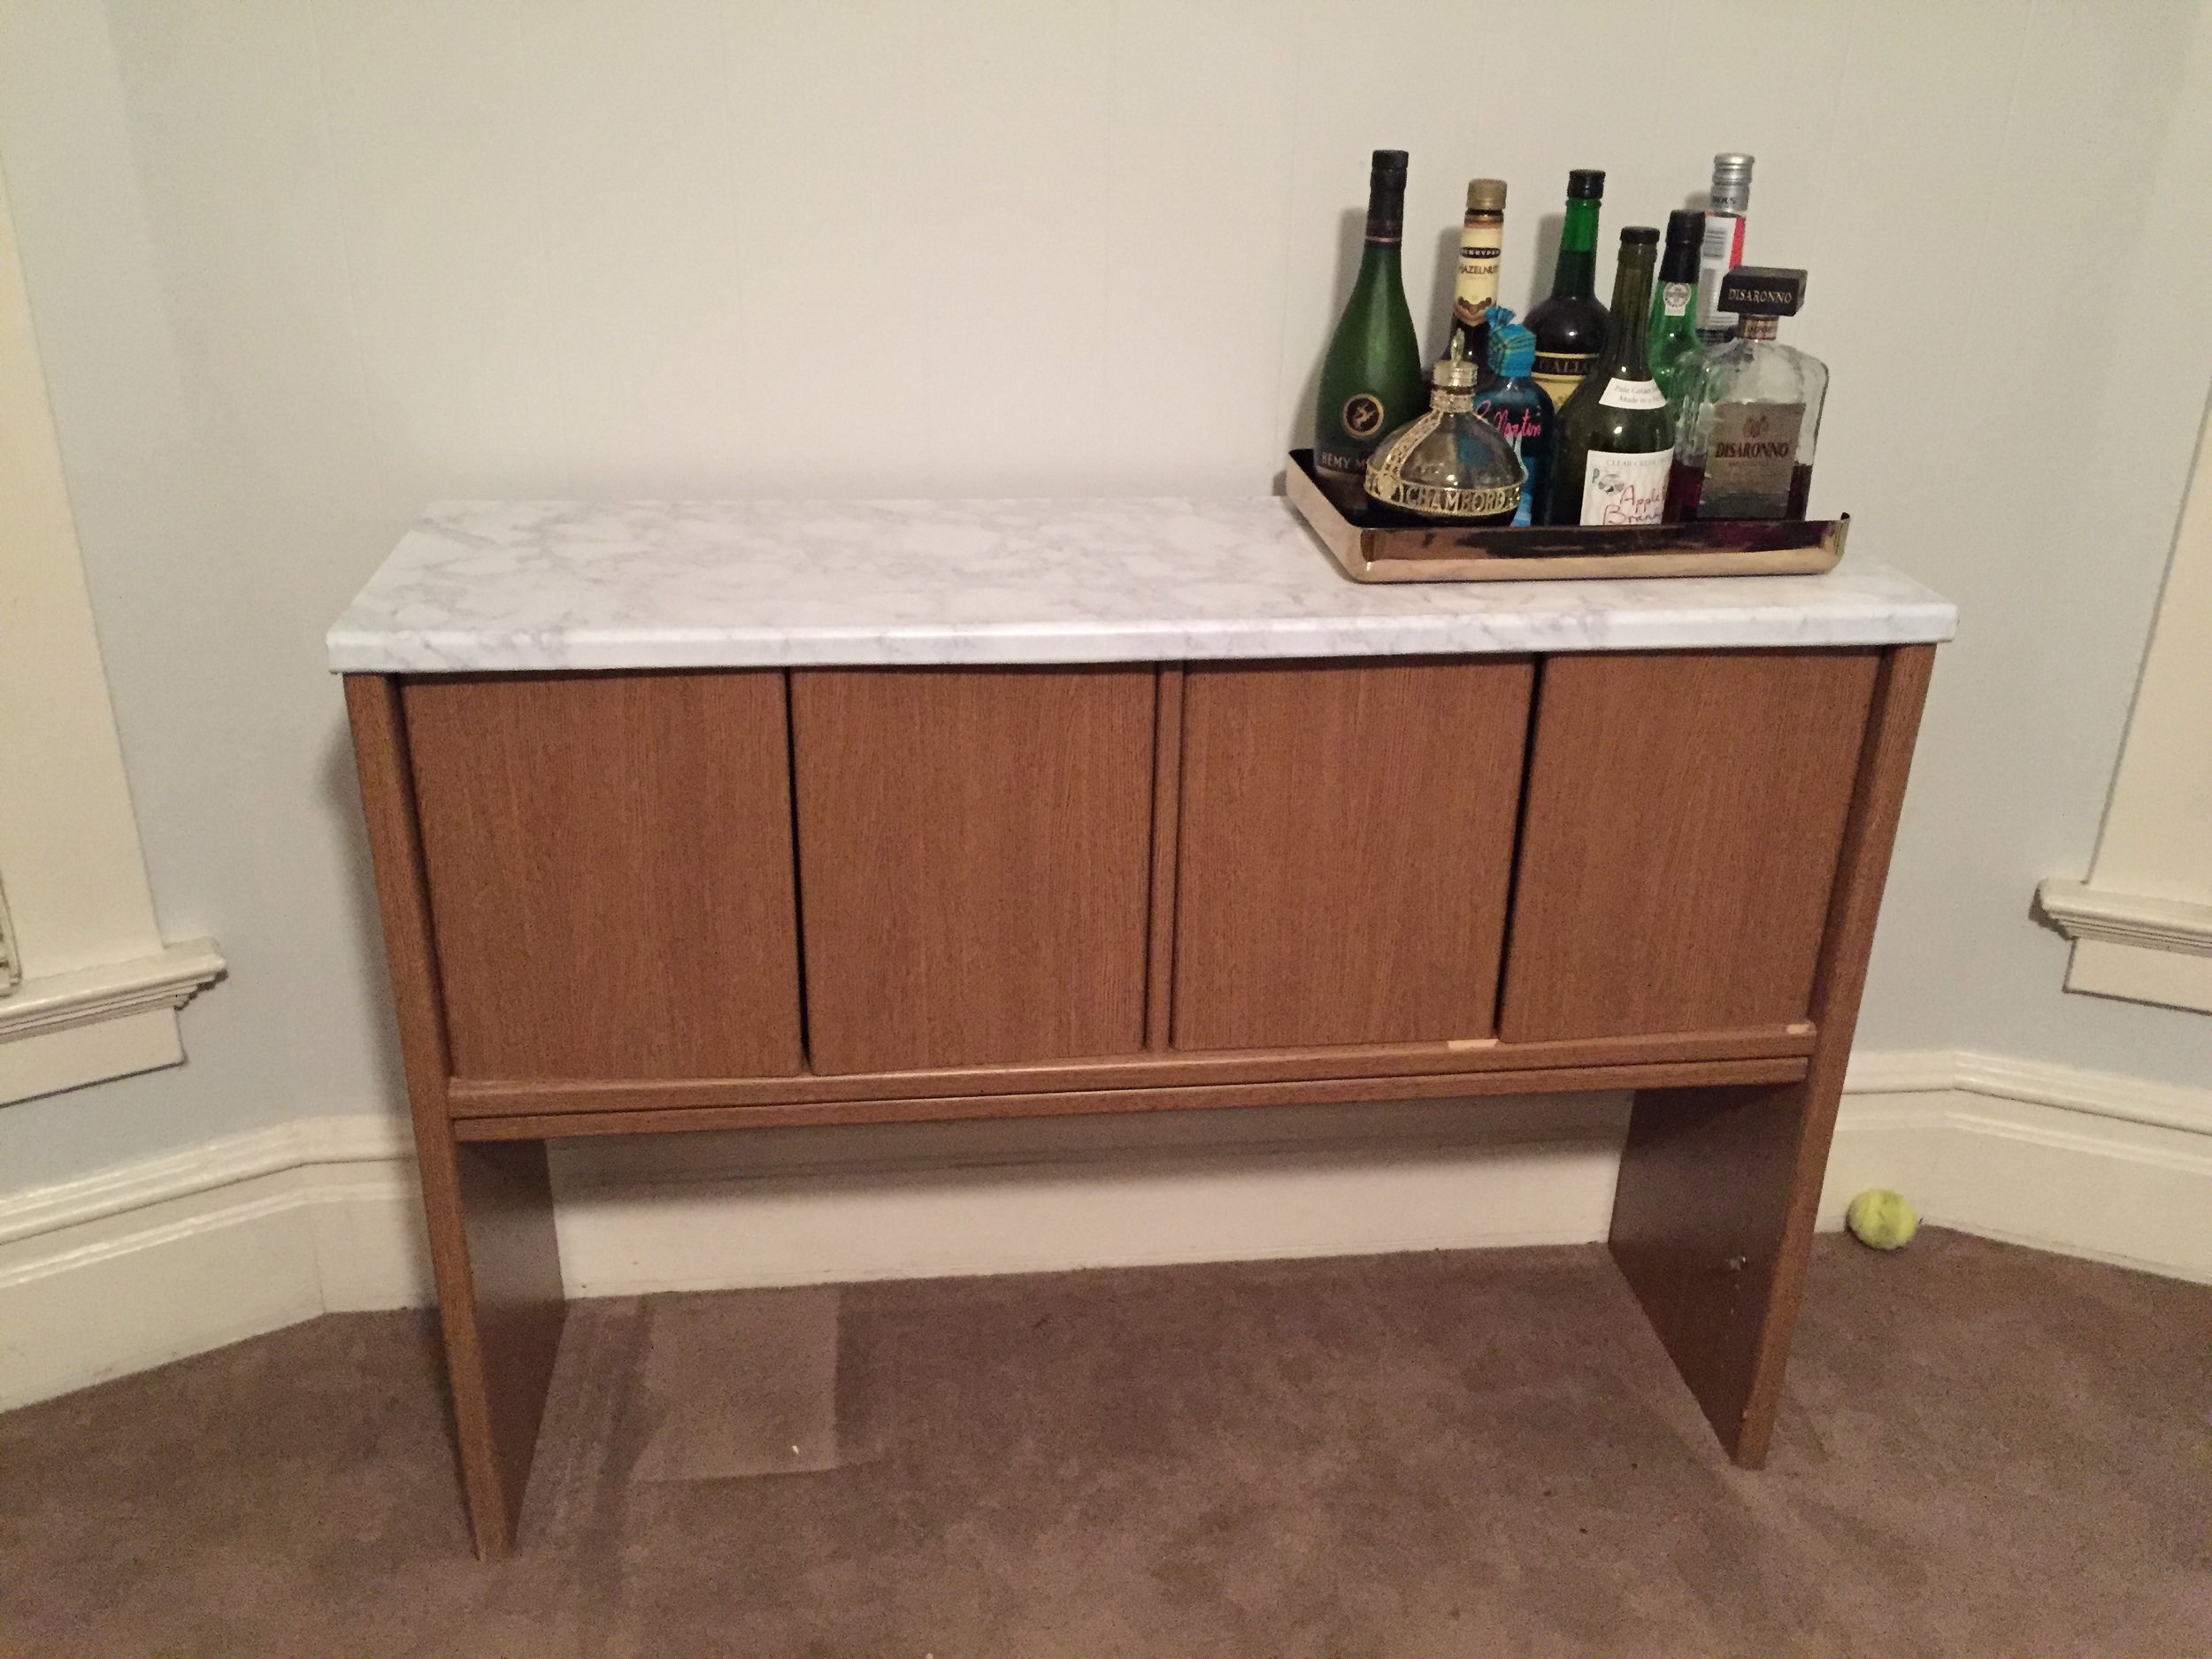 A craigslist find that Kristy improved with marble contact paper. -